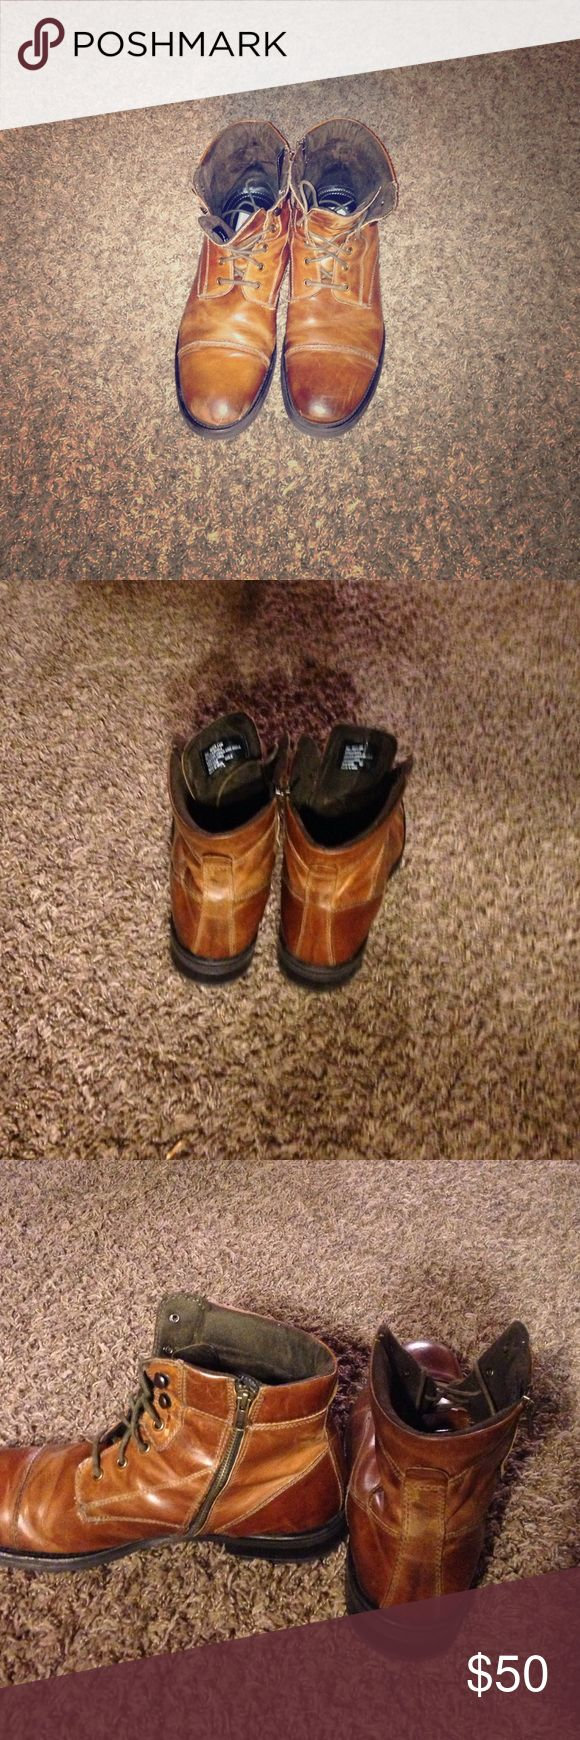 Men's brown boots Men's brown boots zip up on the side and lac up in the front size 13 $60 or best offer GBX Shoes Boots